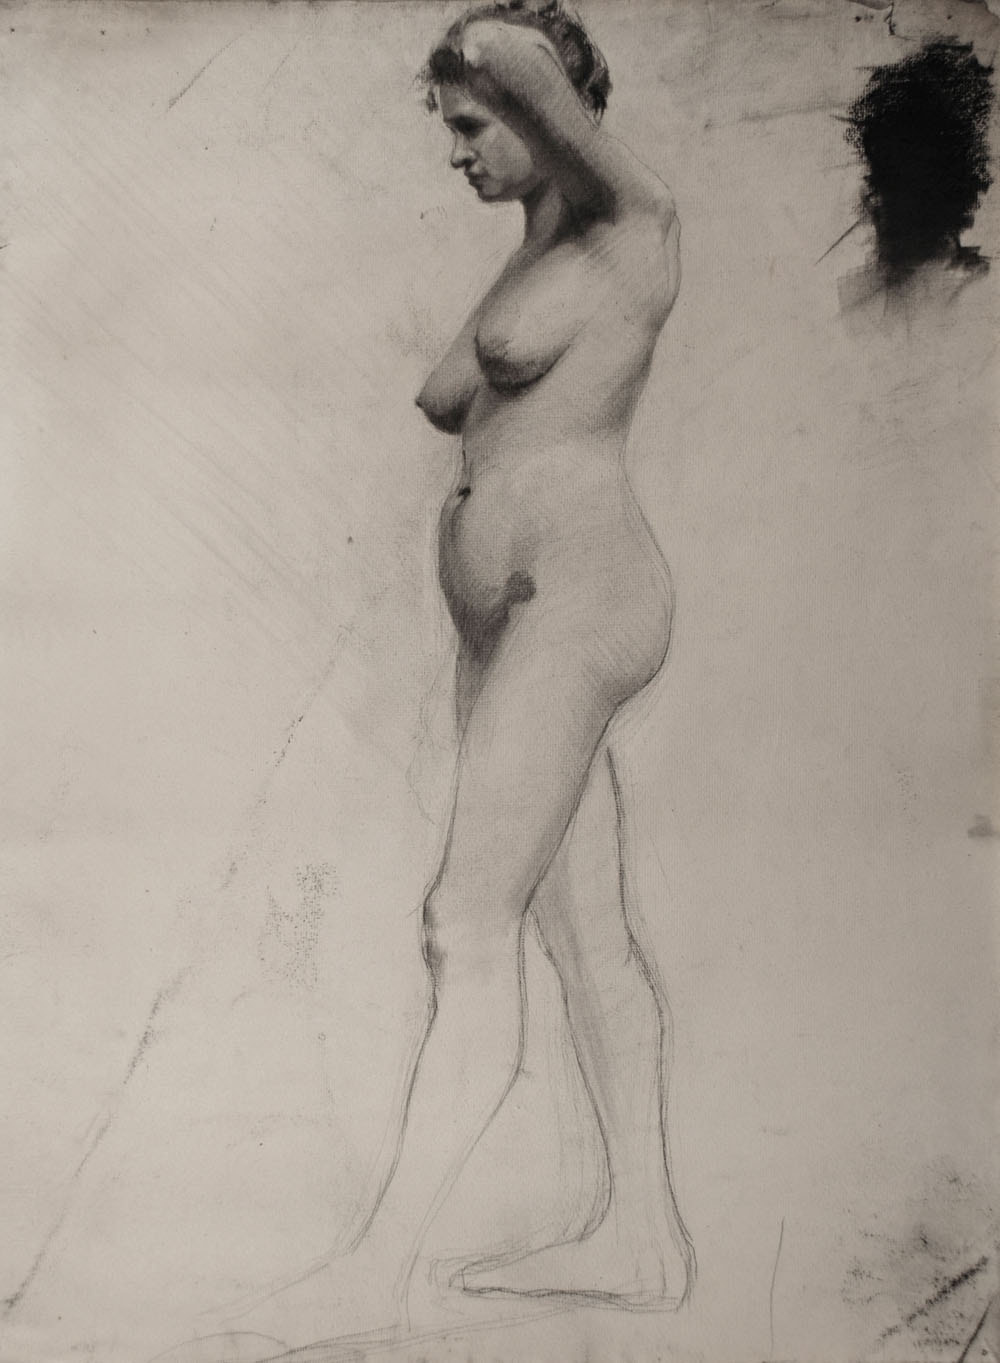 Lucien-Paul Pouzargues drawing female nude from the side